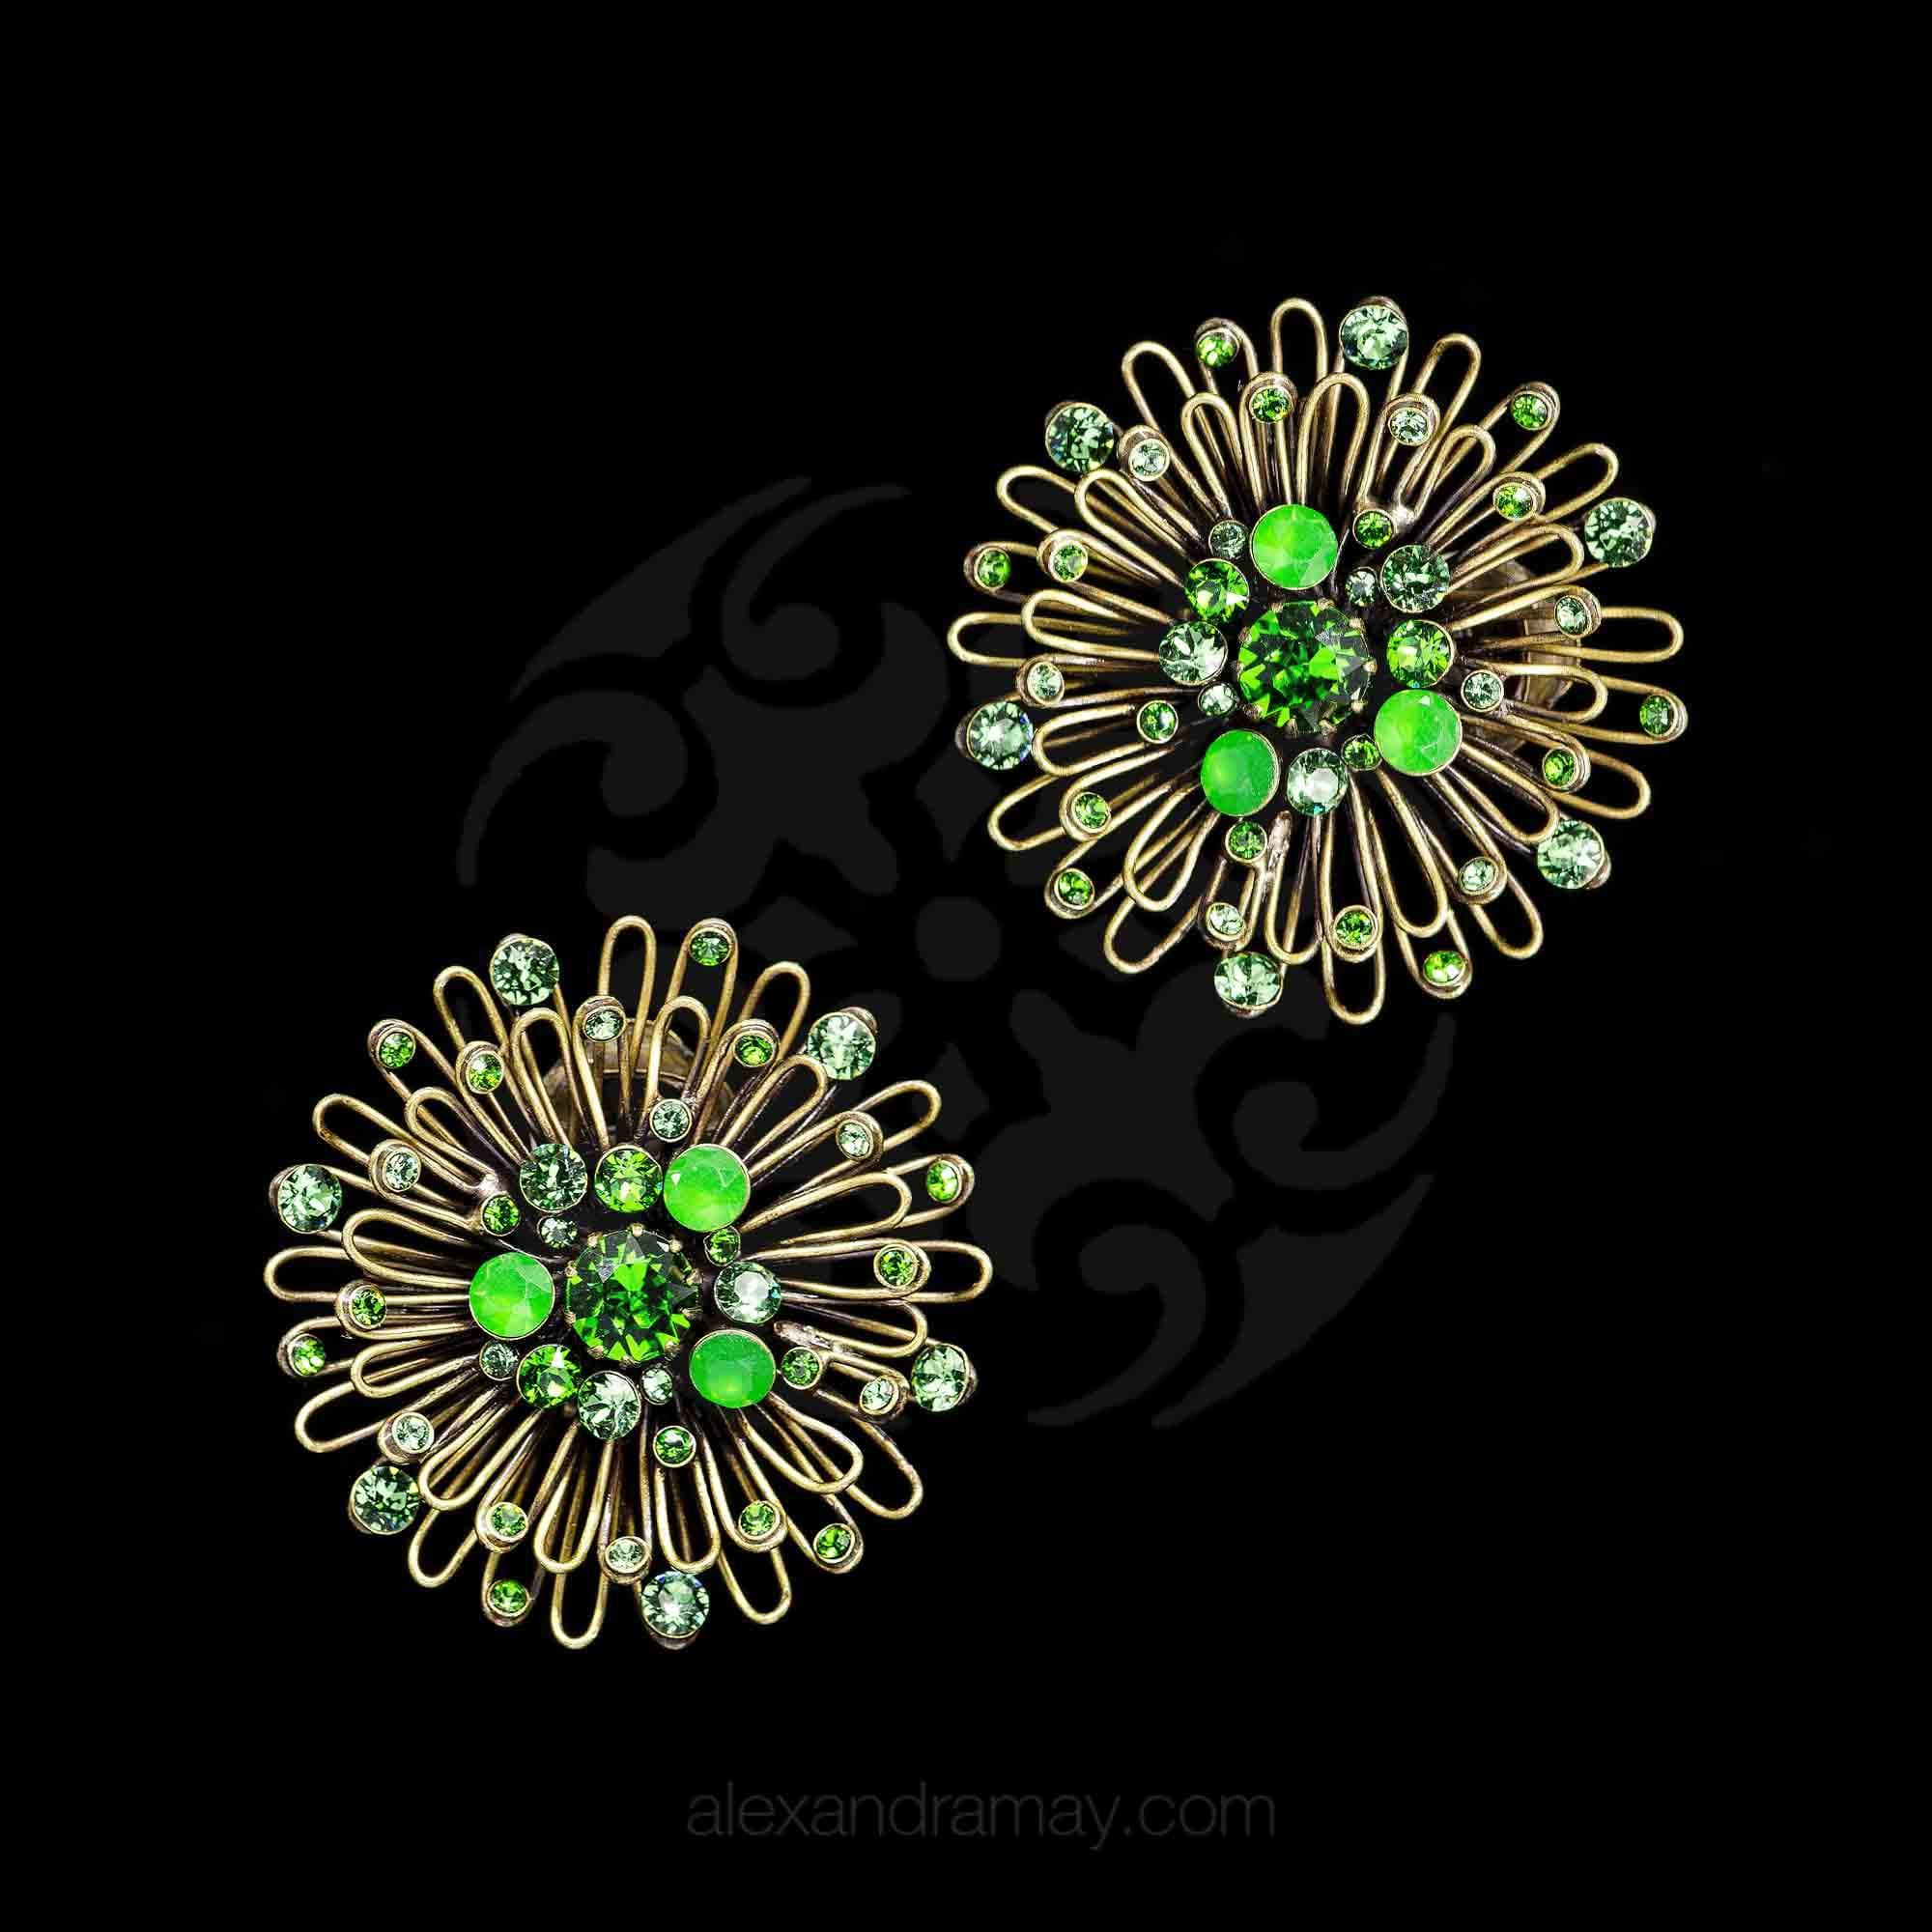 Konplott 'Distel' Green Swarovski Clip-on Earrings (633480)